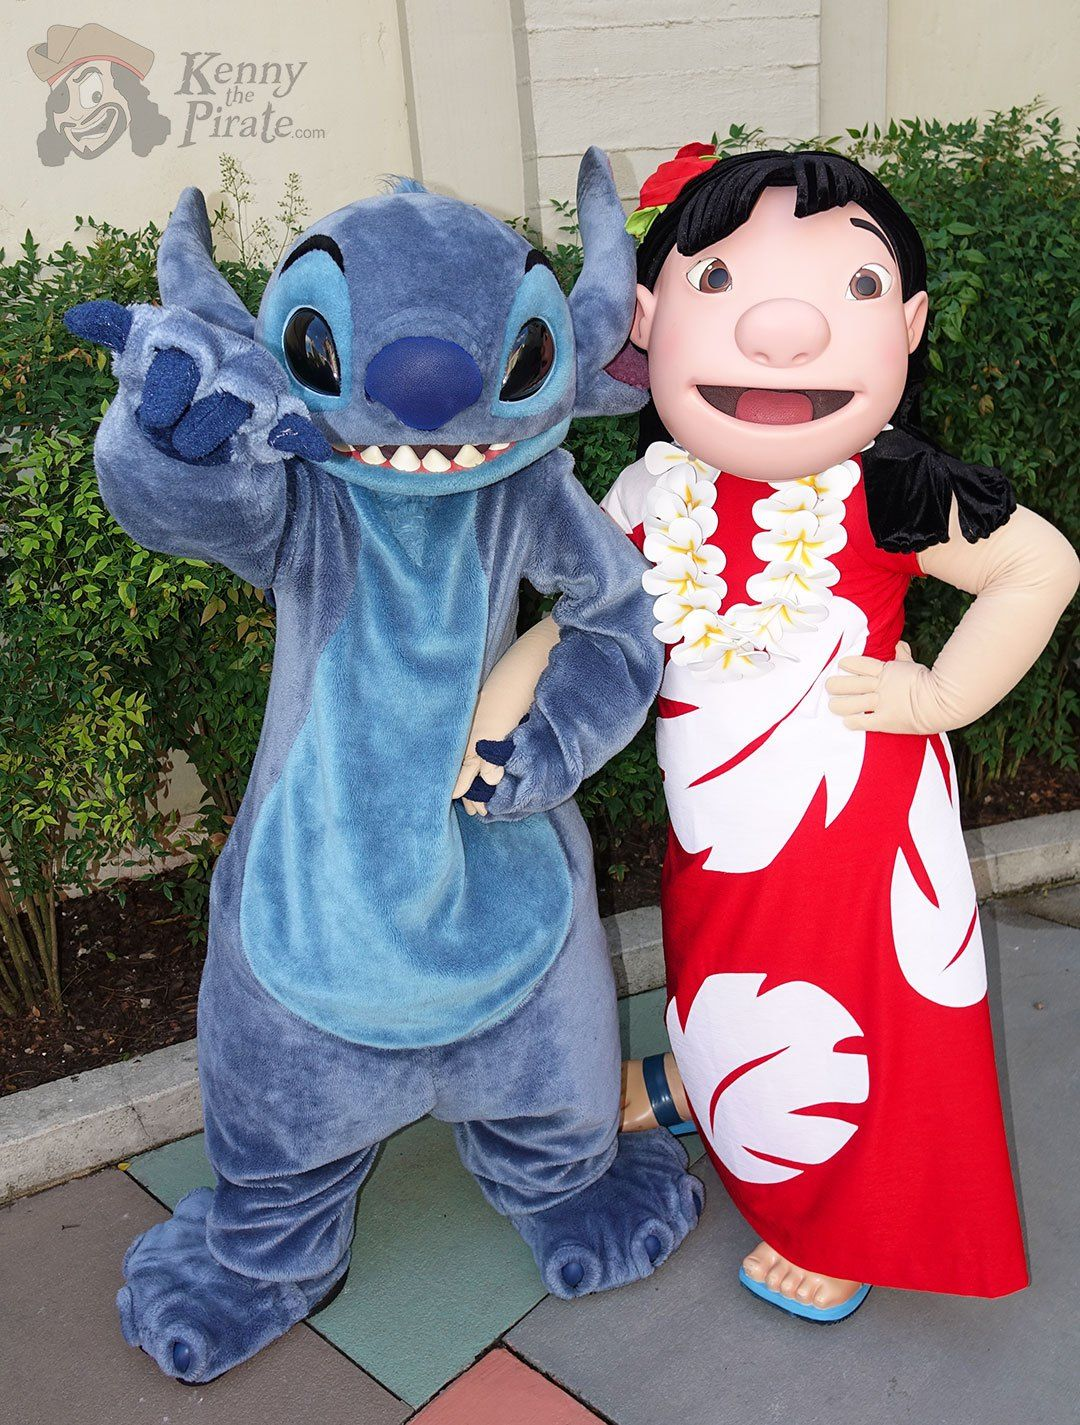 Hollywood studios character meet and greet update with an awesome hollywood studios character meet and greet update with an awesome rare find kristyandbryce Gallery